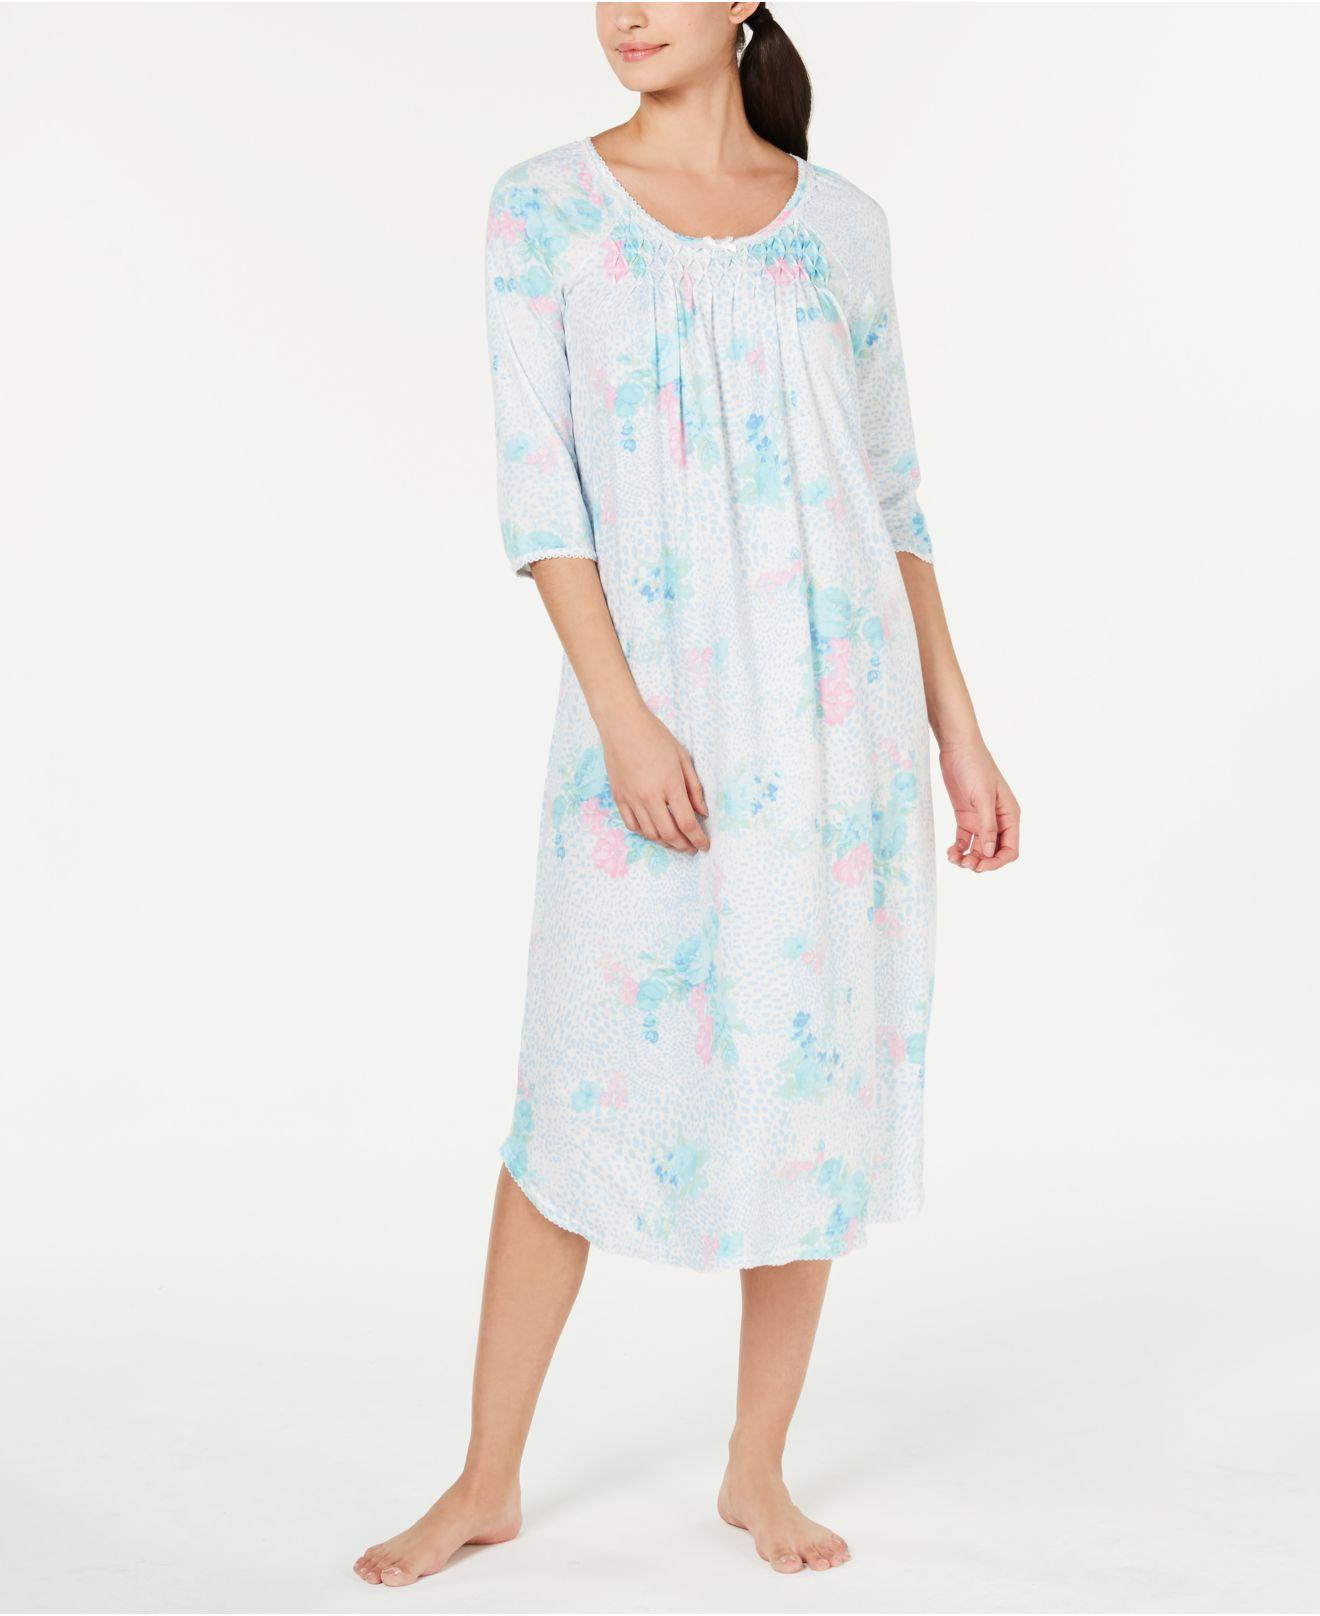 e5c02bb69 Lyst - Miss Elaine Printed Long Knit Nightgown in Blue